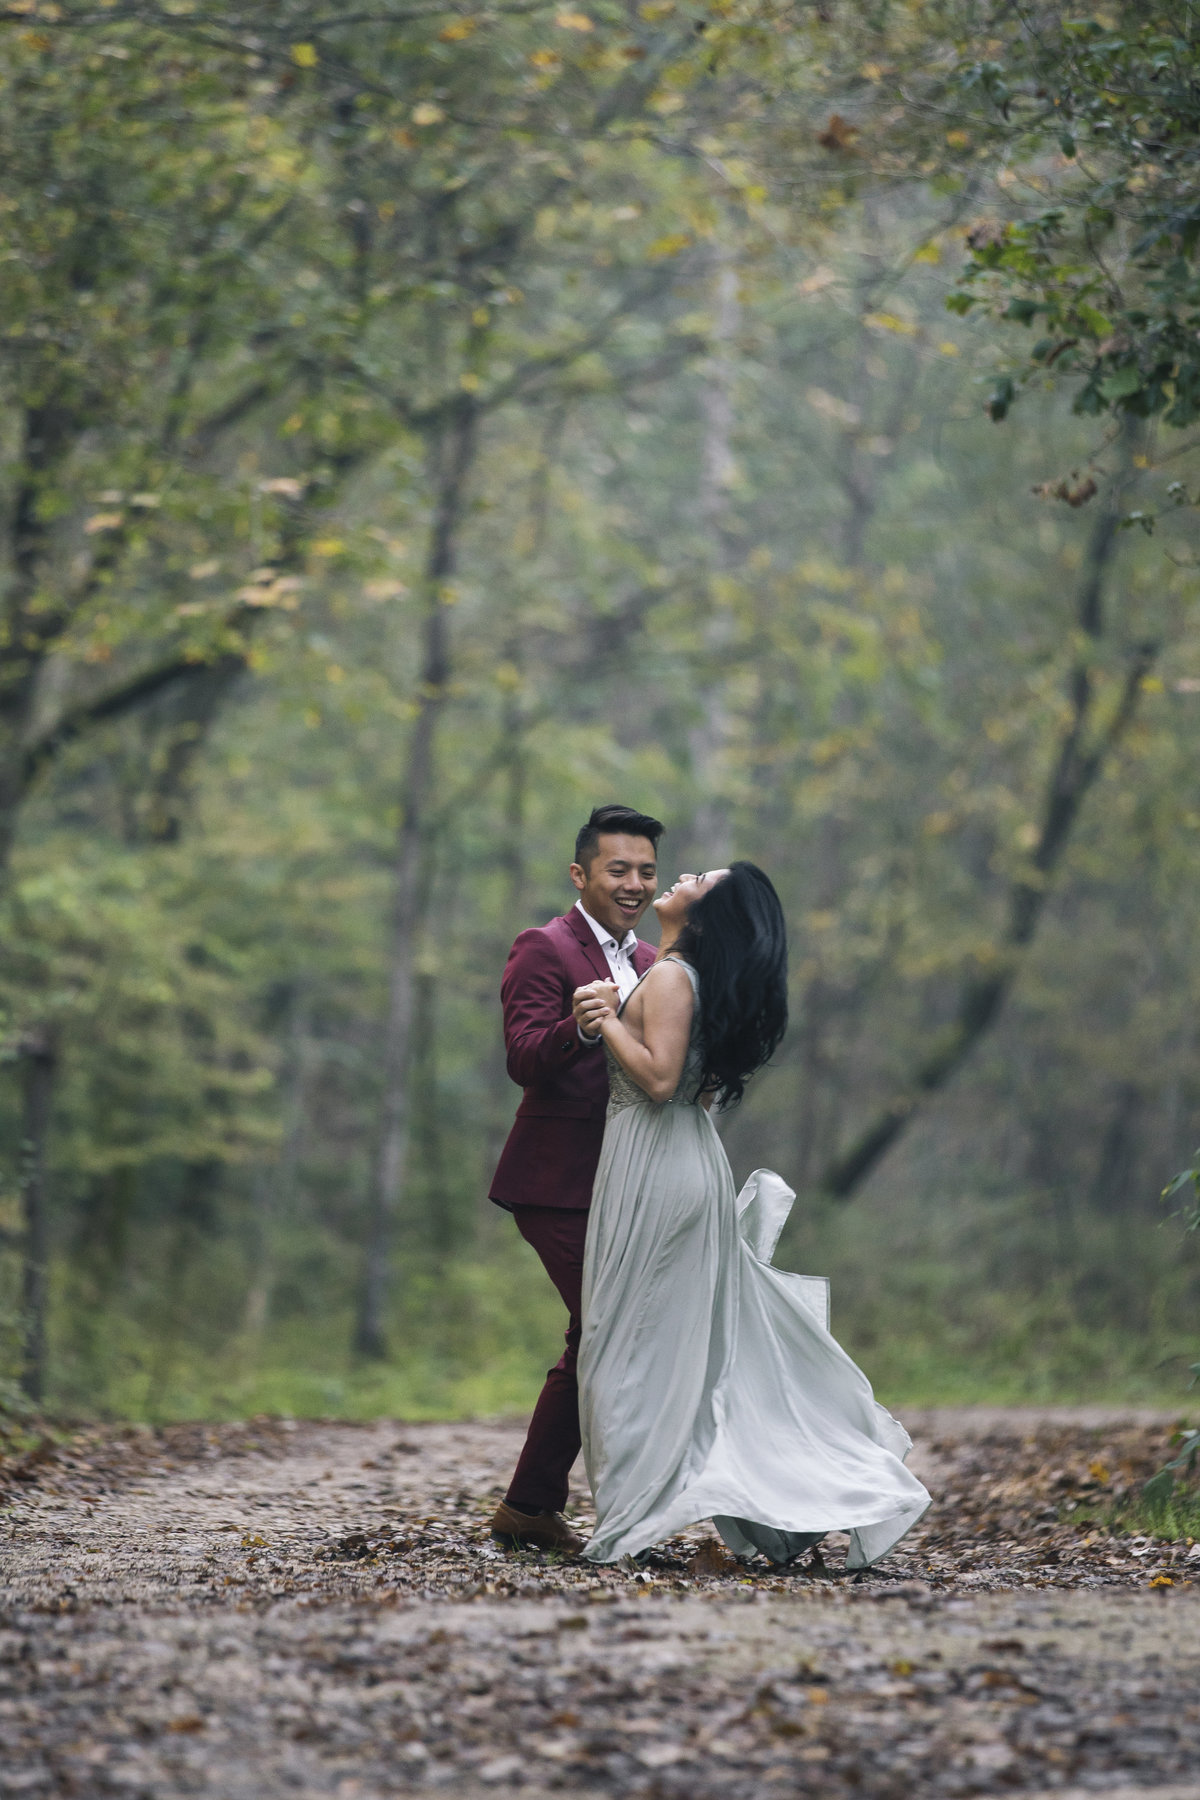 True-moua-portriats-wedding-destination-elopemnets-couples-lacrosse-wisonsin-minnesota-onalaska-holmen-creative-natural-pics3840